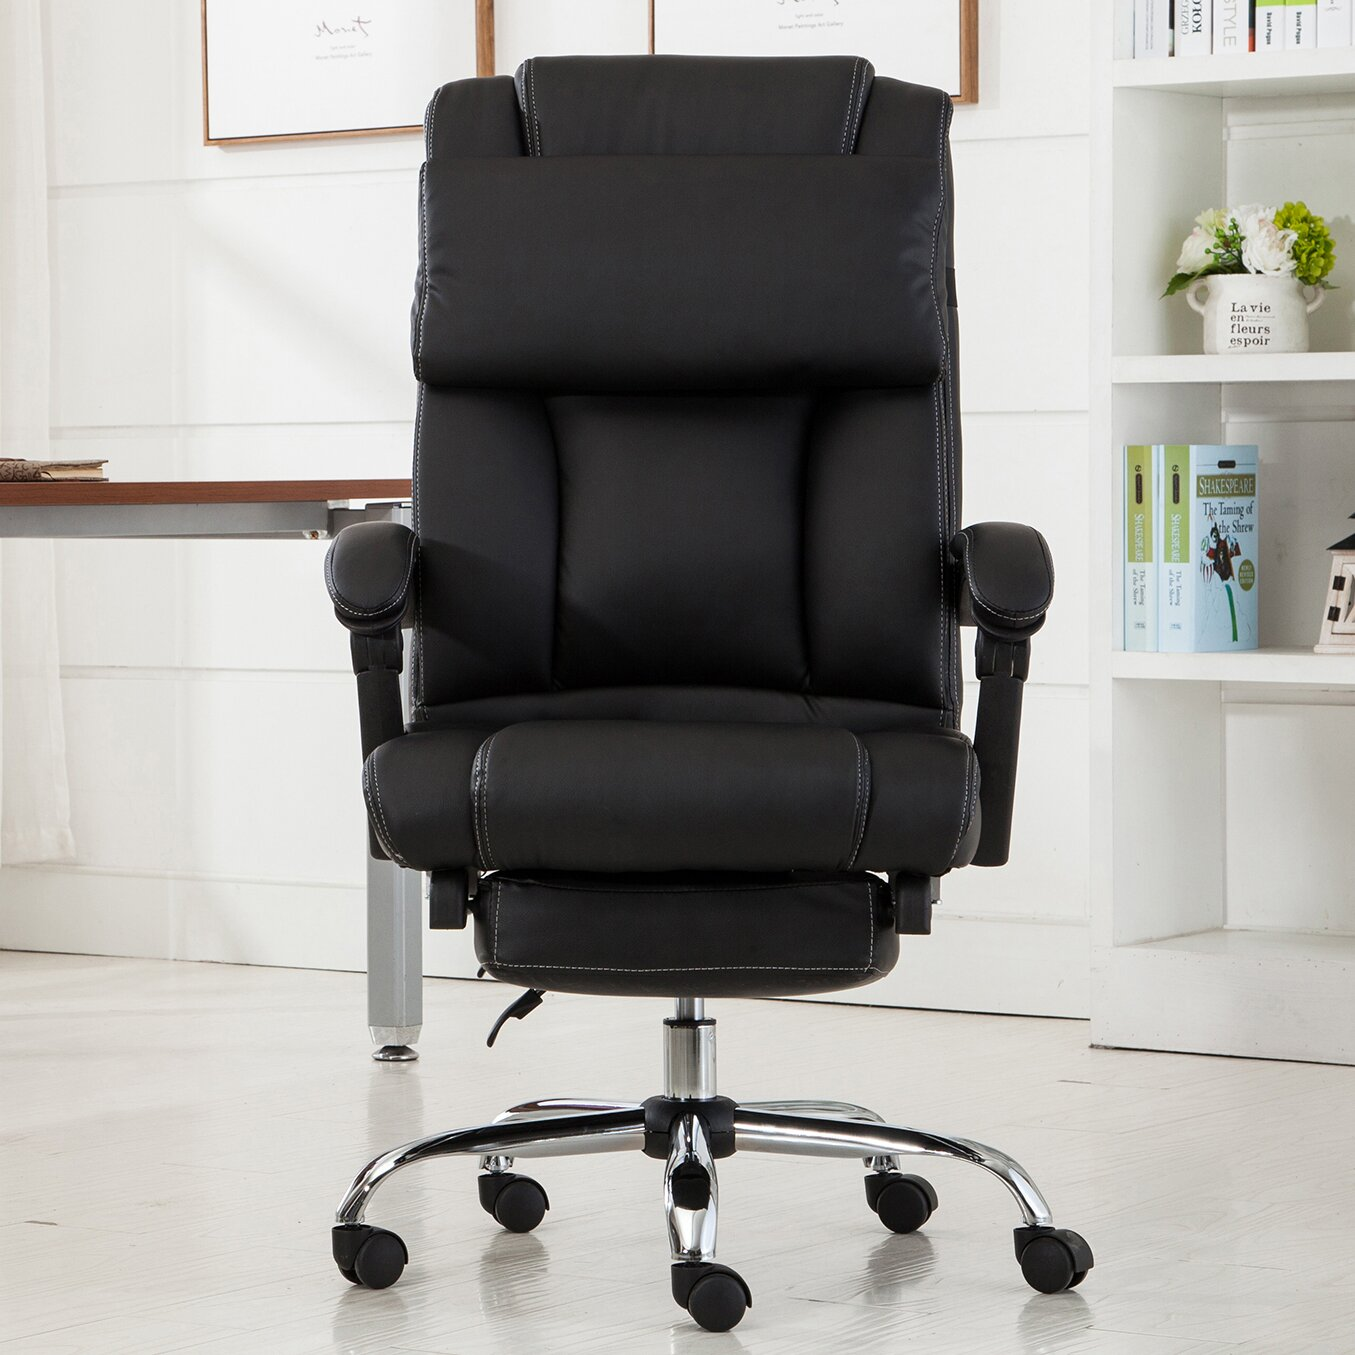 Lounge chairs for bad backs - Executive High Back Footrest Recliner